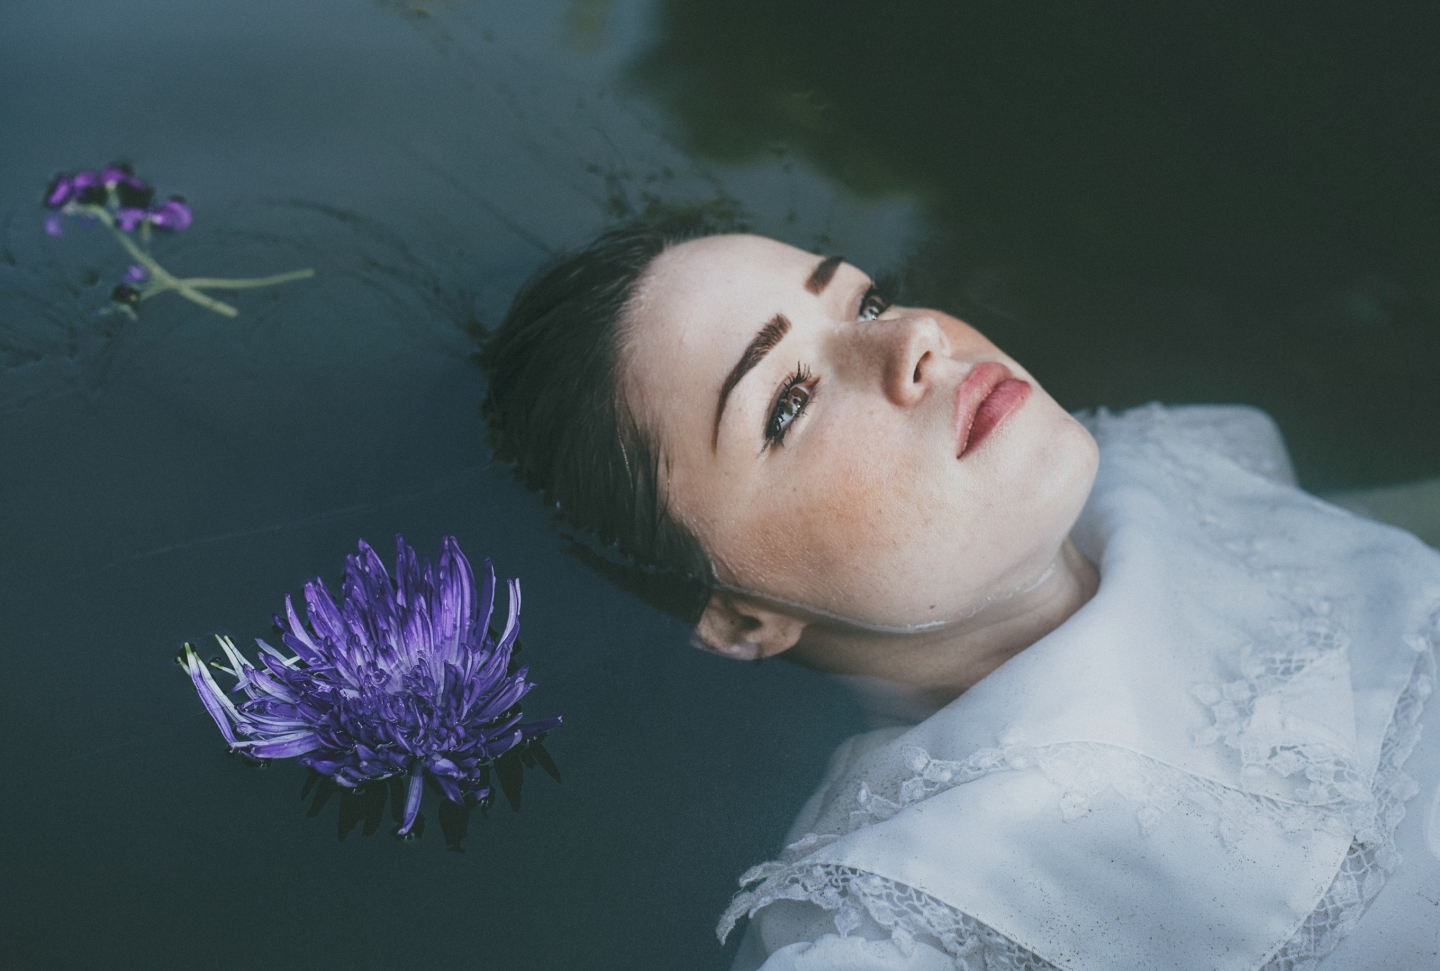 Photography by Cora Edwards